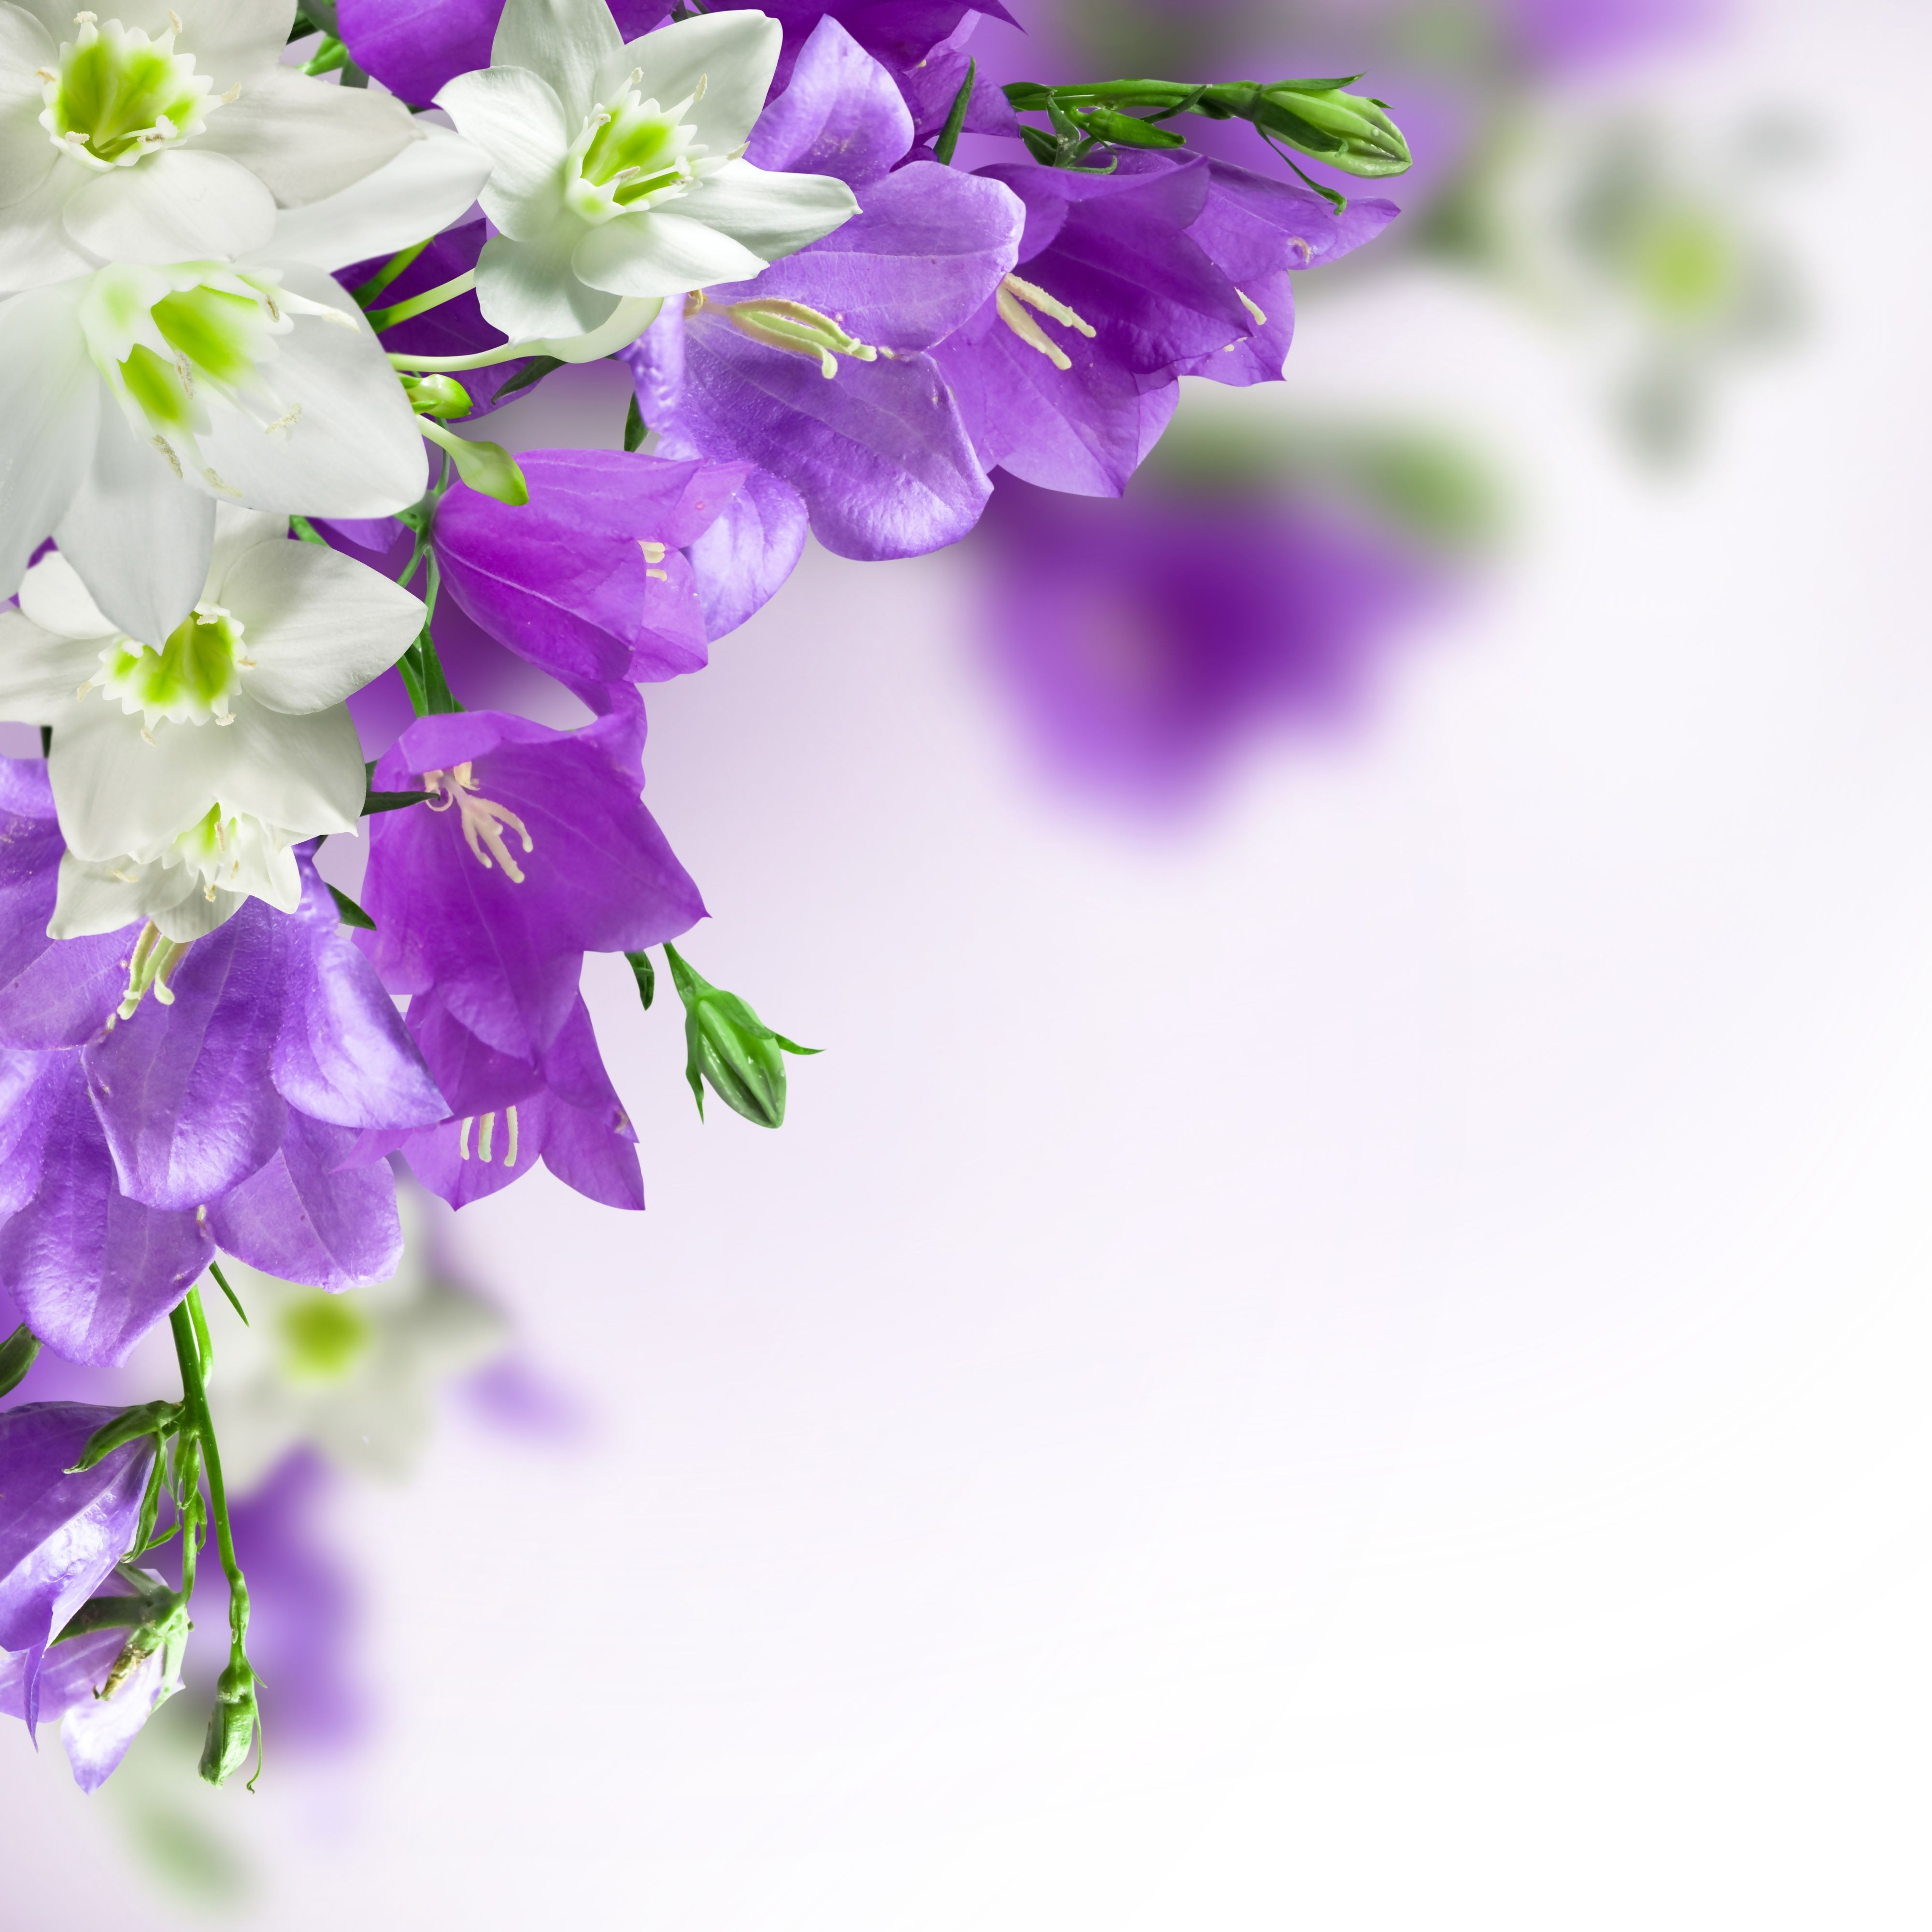 spring background with white and purple flowers | gallery